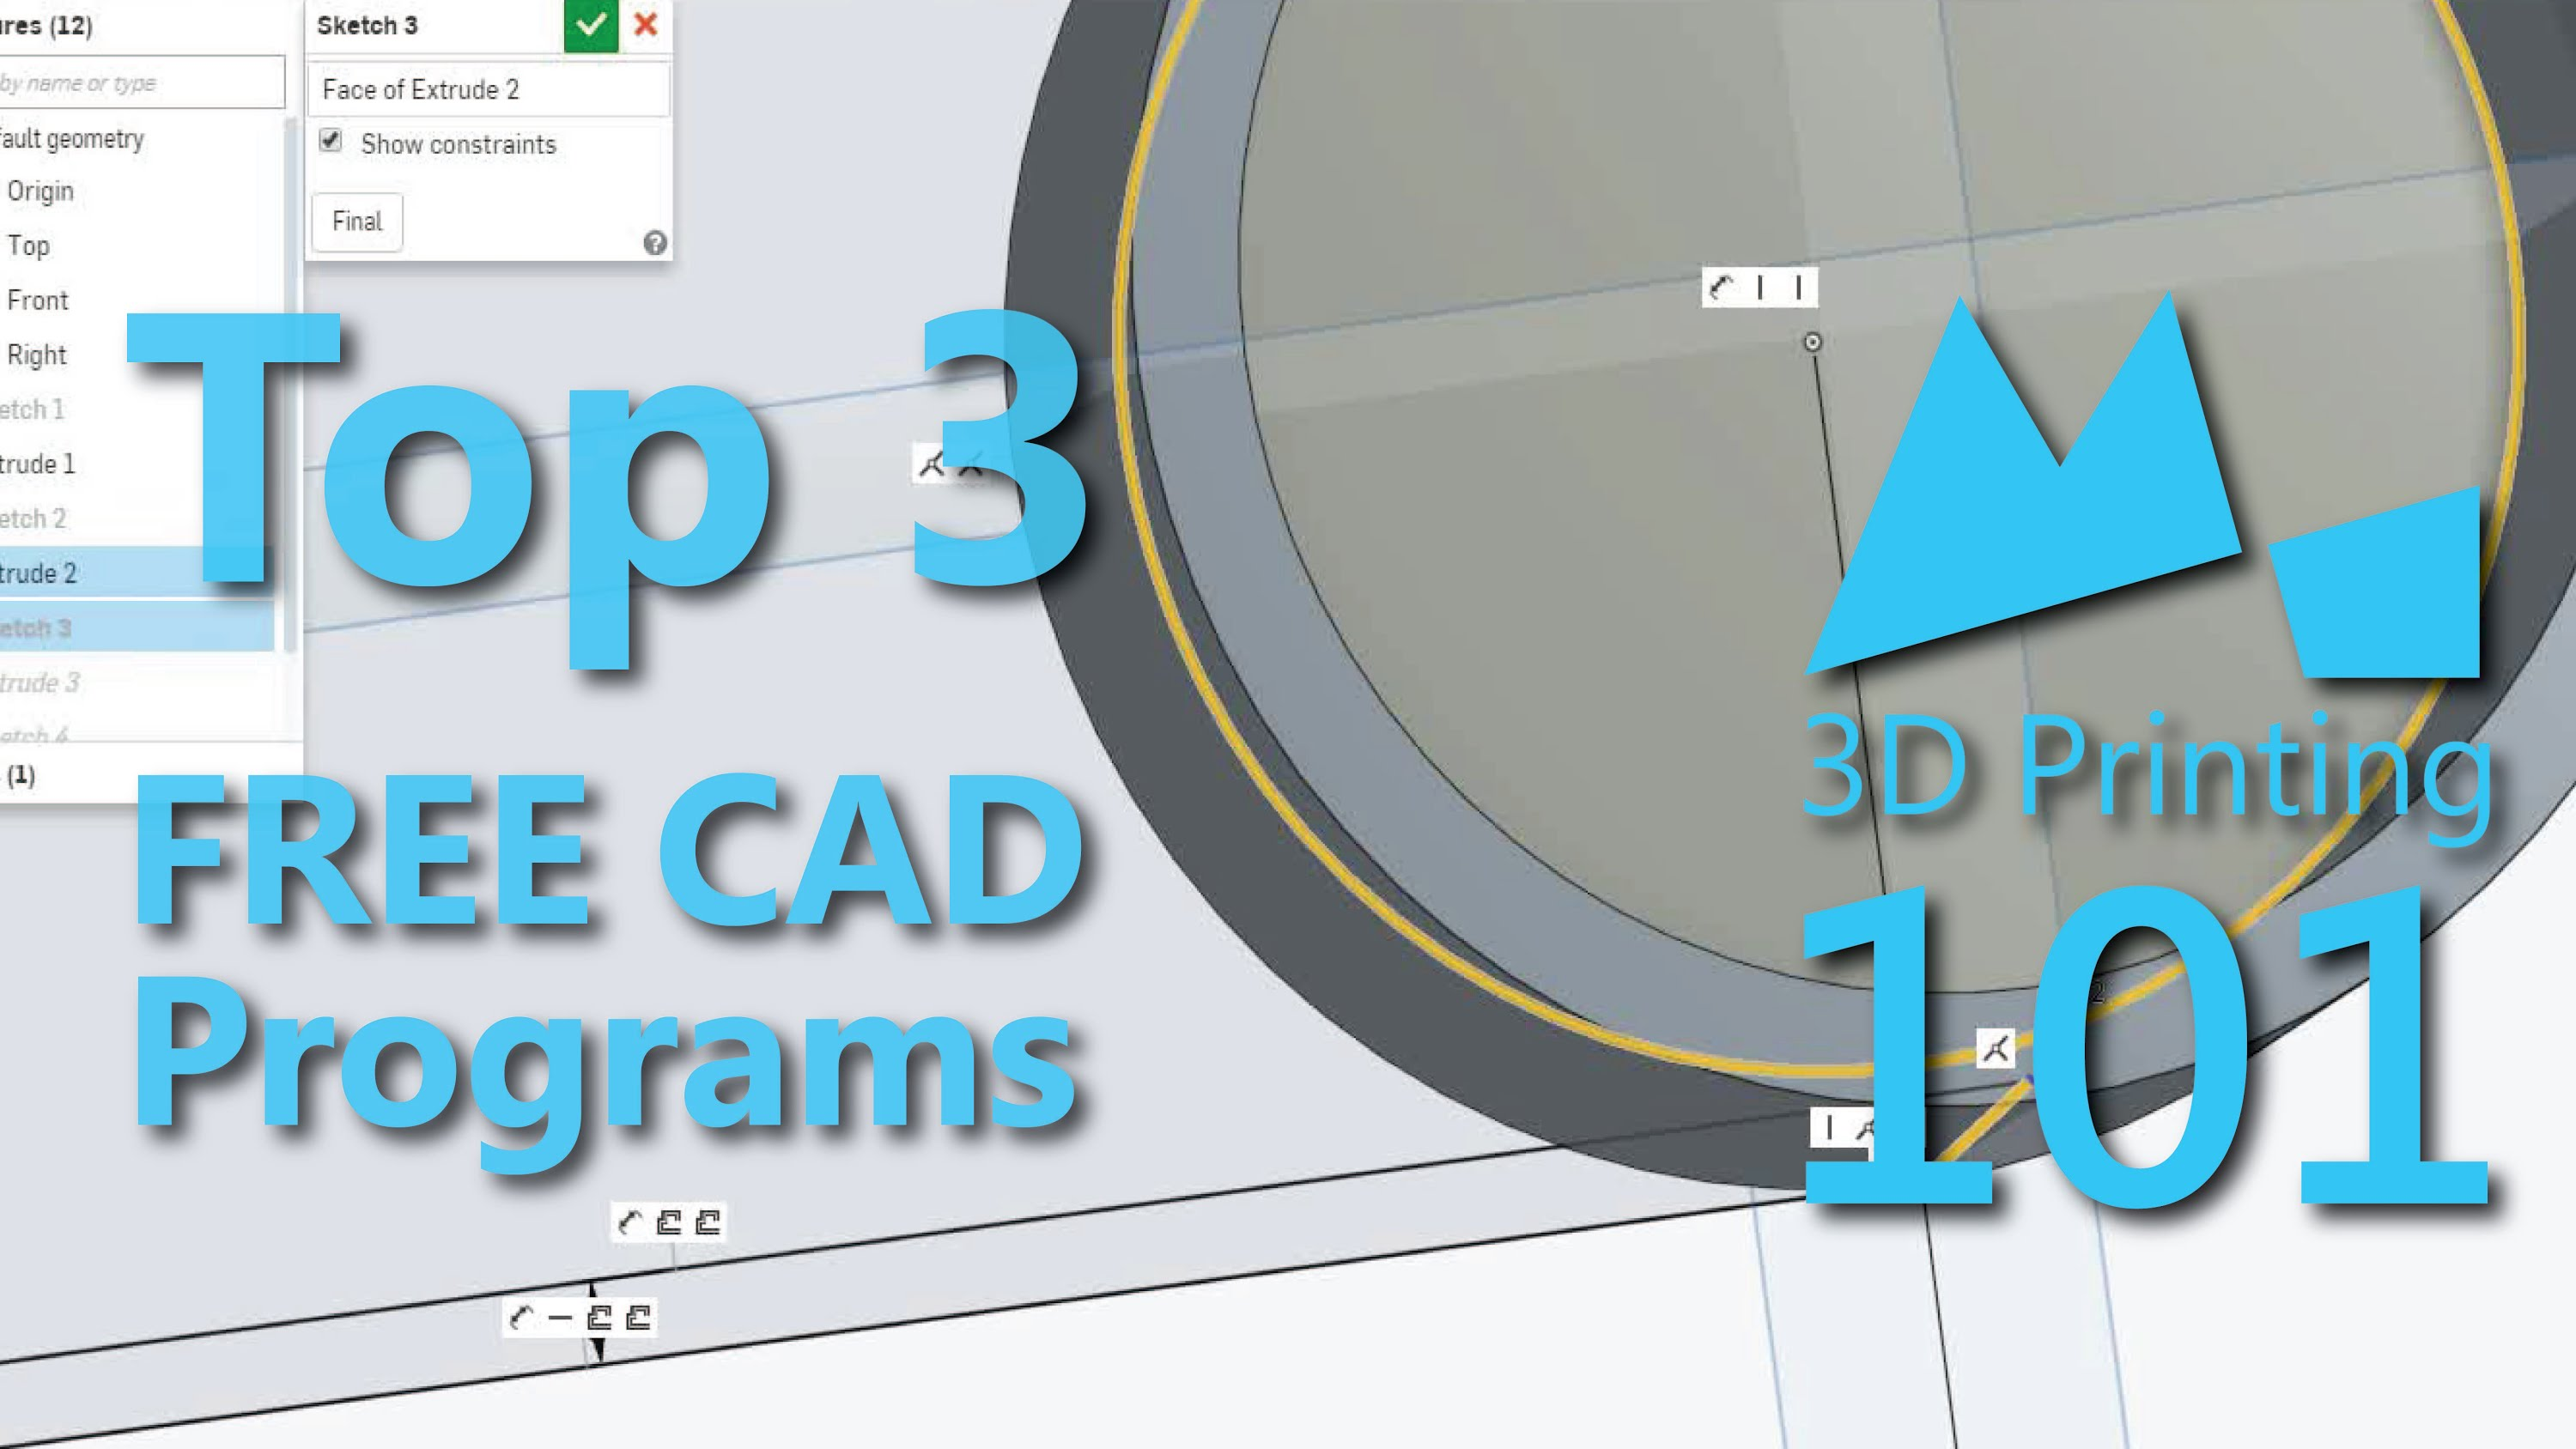 Top 3 free cad for 3dprinting adafruit industries Free cad programs